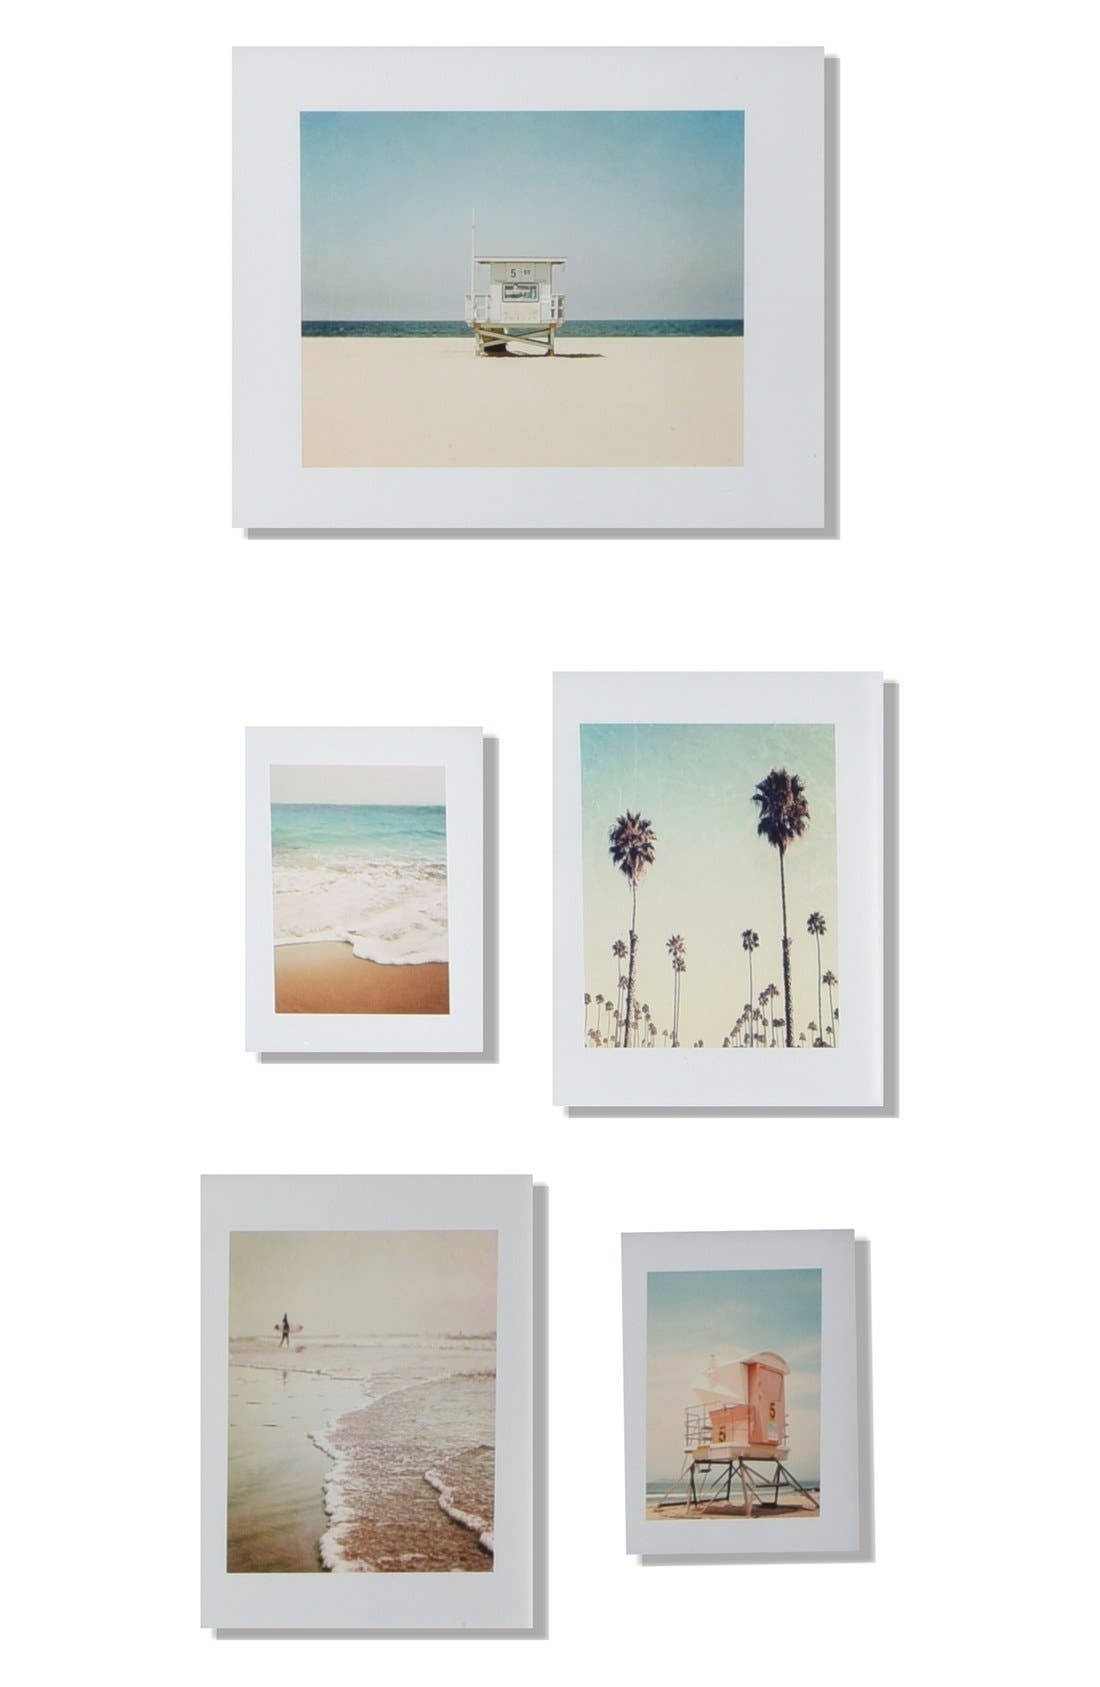 DENY Designs '5th Street' Wall Art Print Set (Set of 5)